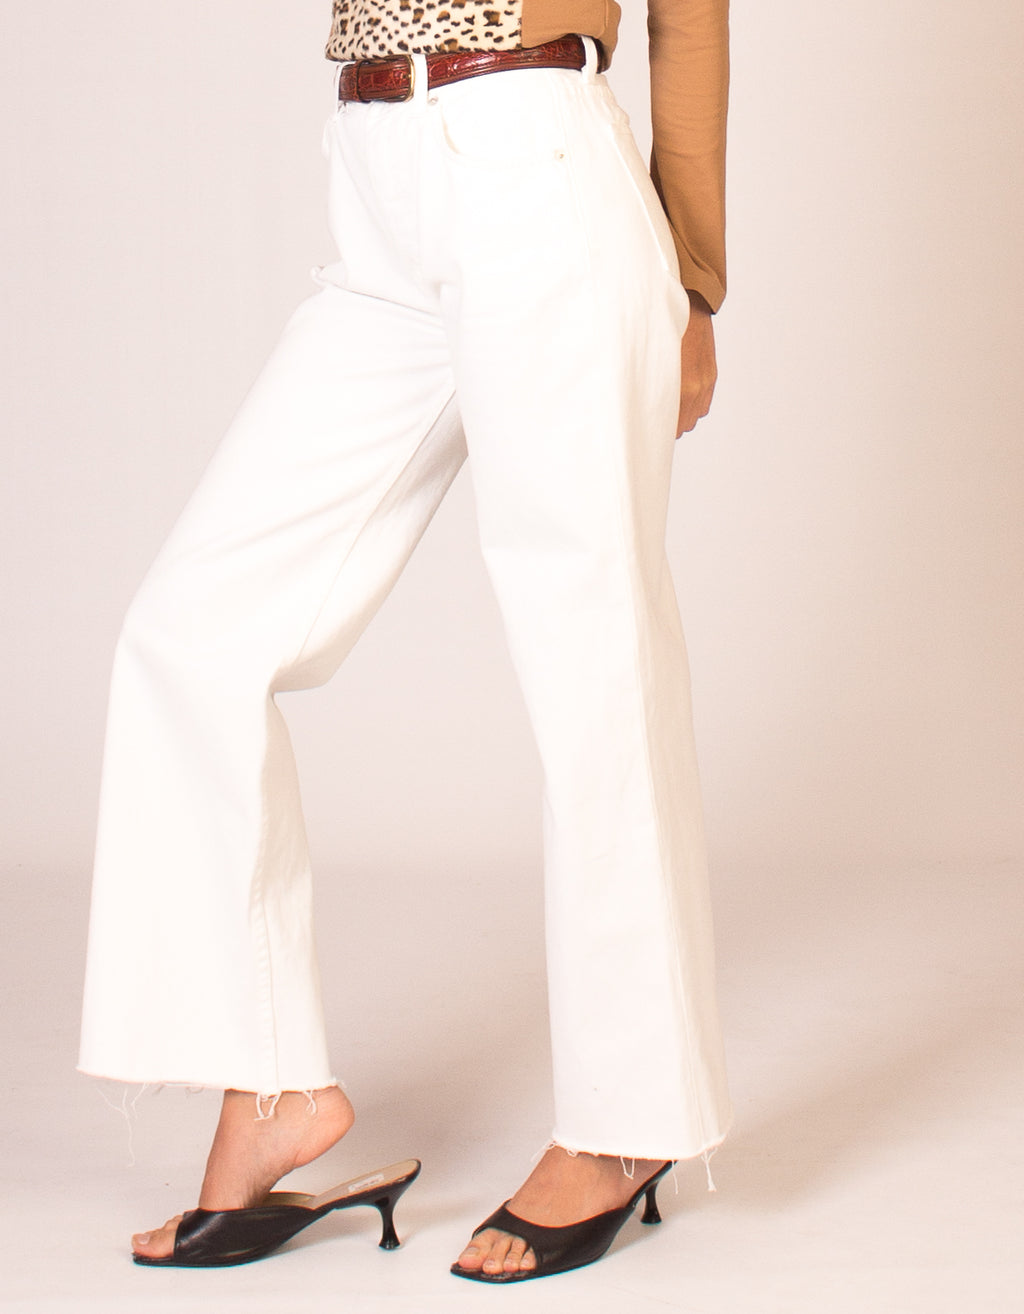 REFORMATION WHITE JEANS